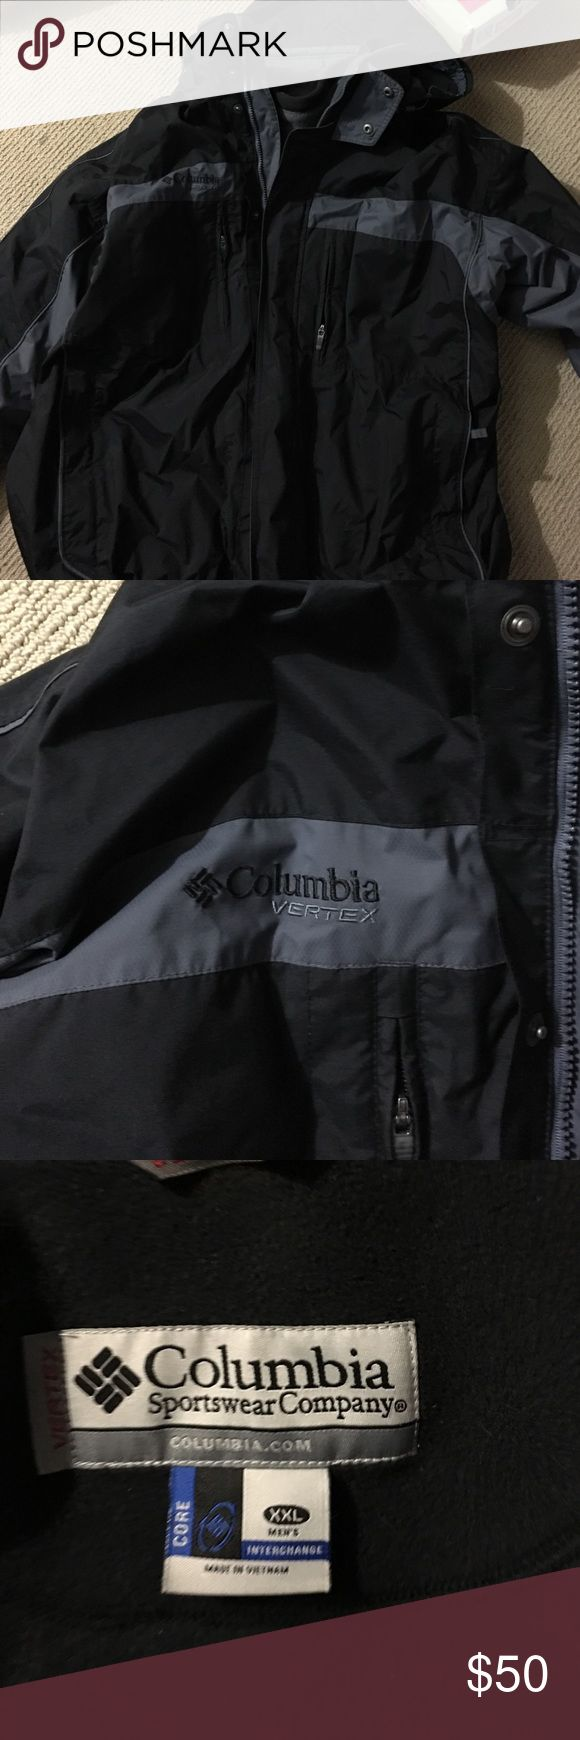 Men's Columbia jacket Black XXL Columbia interchange jacket Columbia Jackets & Coats